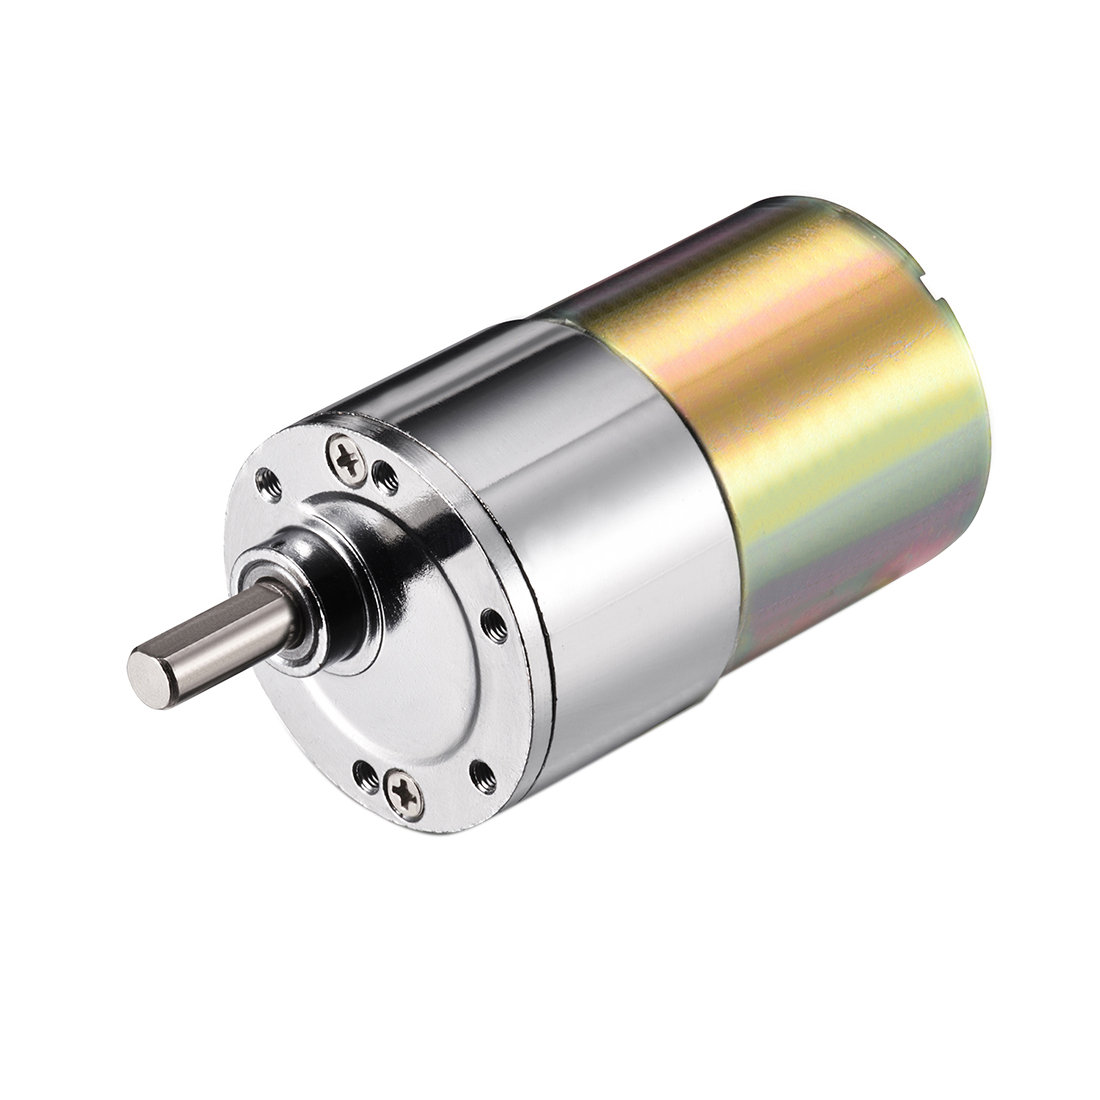 DC 24V 10RPM Micro Gear Box Motor Speed Reduction Electric Gearbox Eccentric Output Shaft